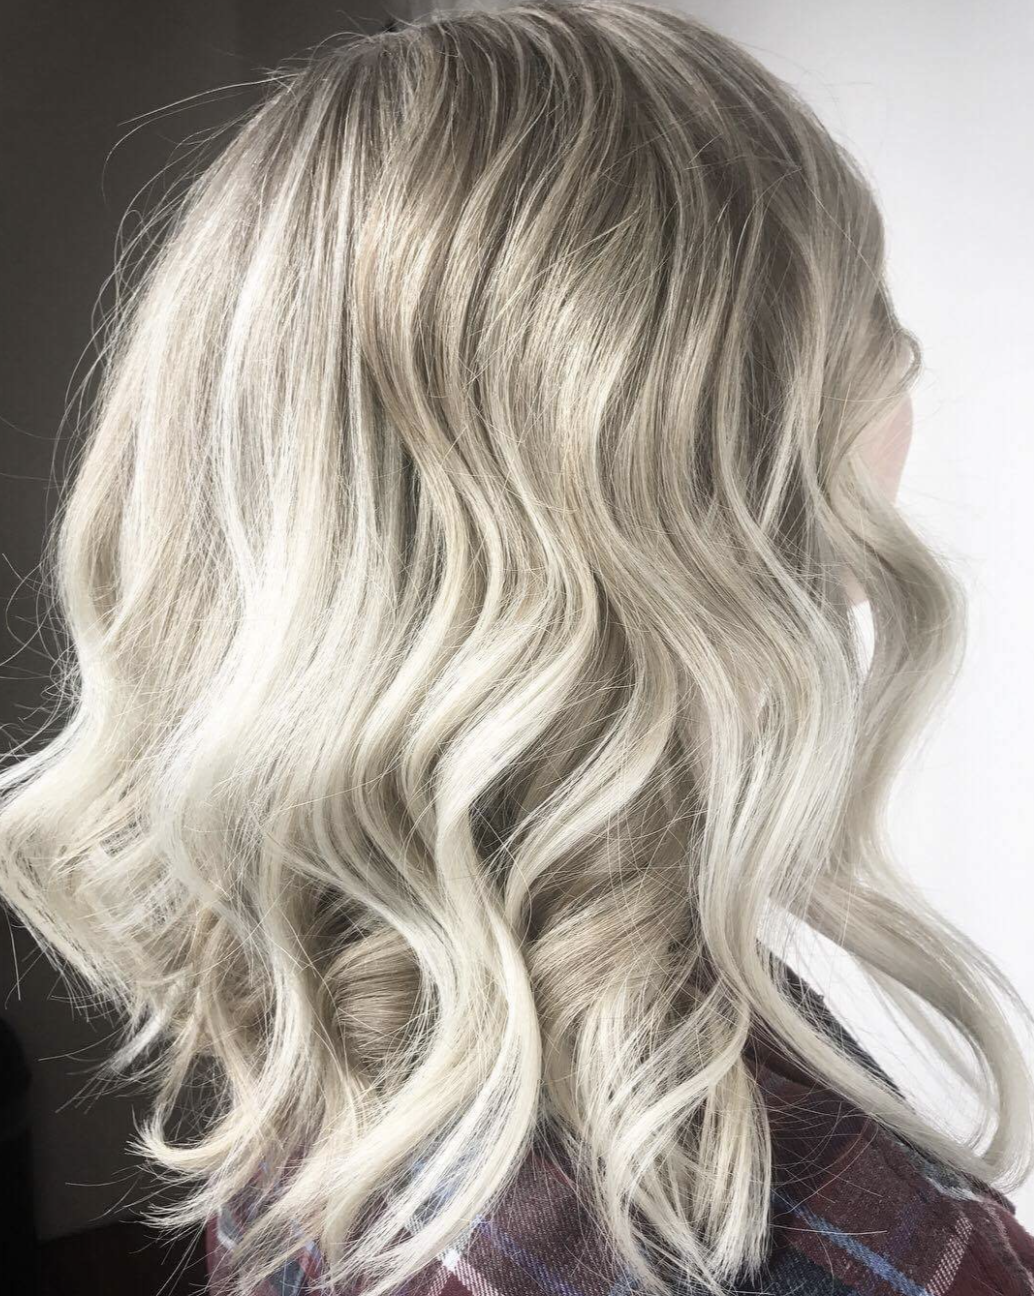 The Icy Balayage, by Maggie Leonhardt